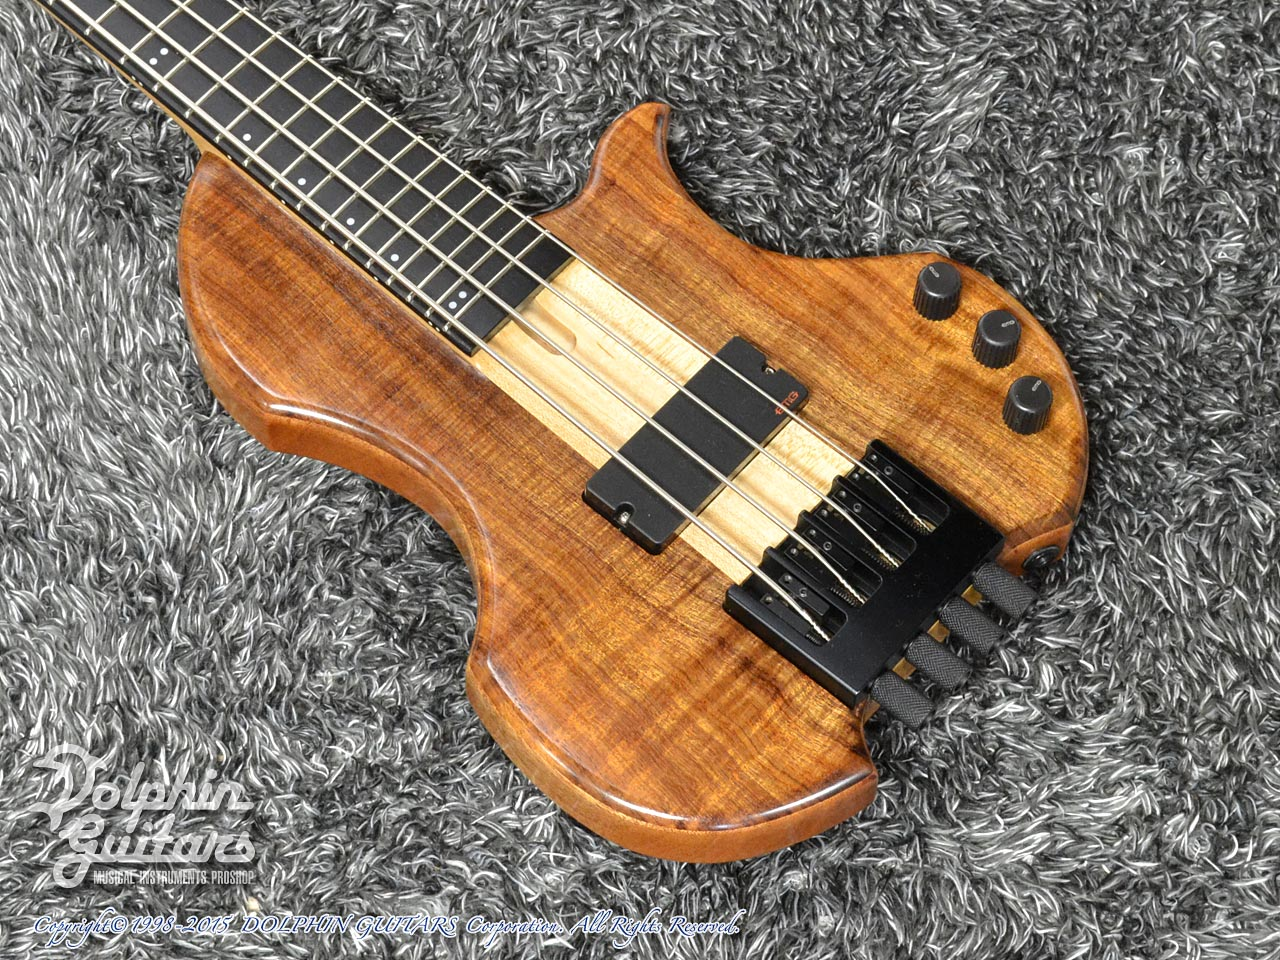 Charo's: Compact Headless Bass (Hawaiian Koa) (1)